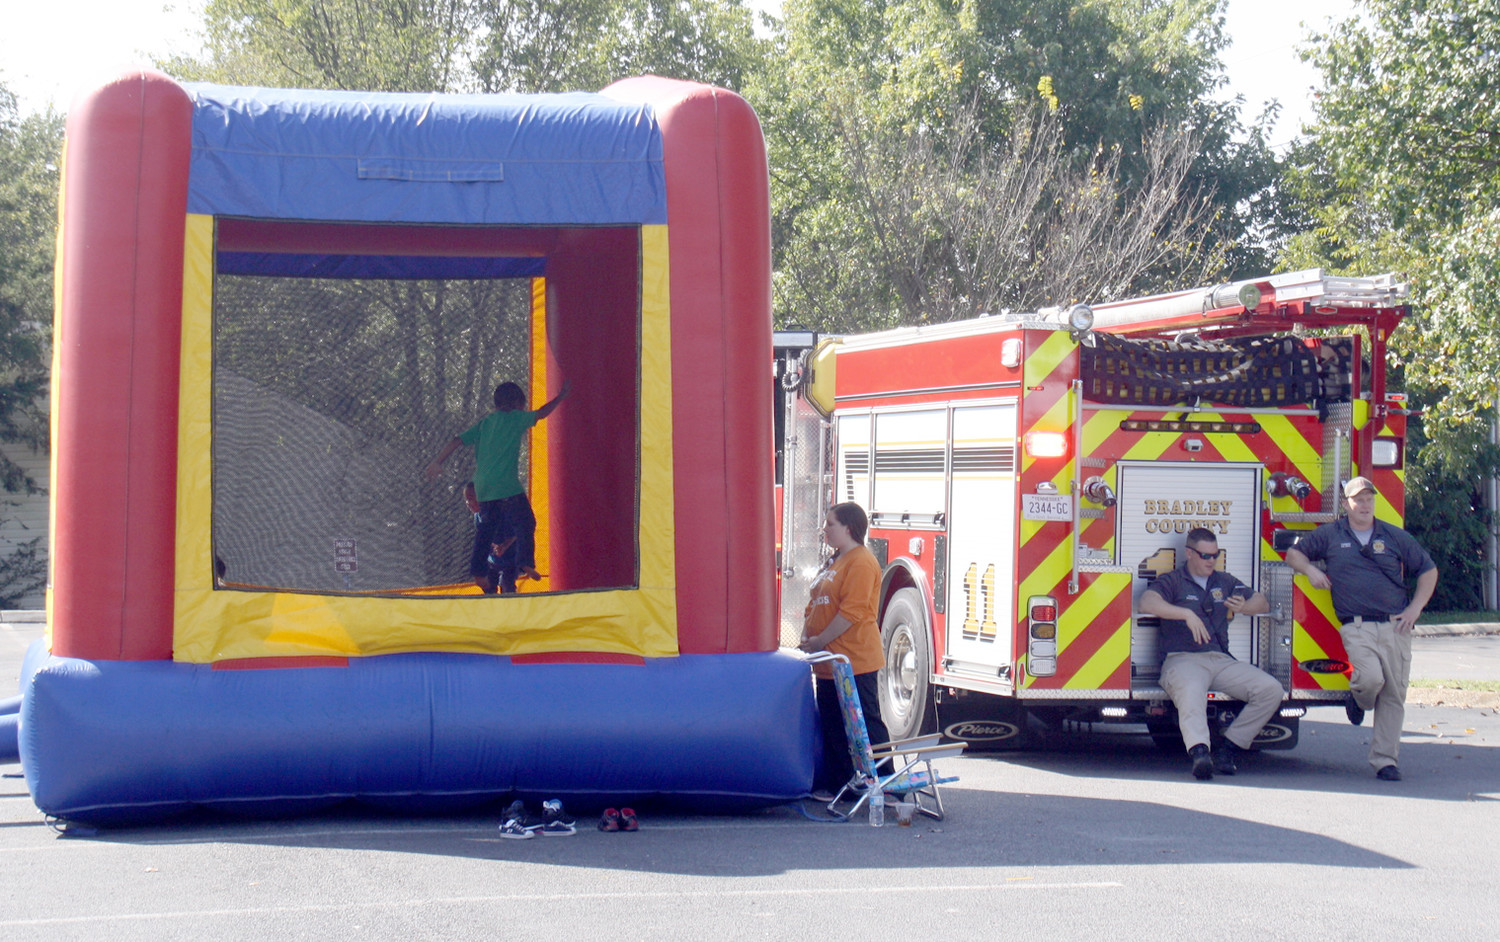 ONE OF THE POPULAR attractions at Friday's health department Fall Festival was the bounce game. As the festival was just getting started Friday, two members of the Cleveland Fire Department were waiting for interested youngsters.